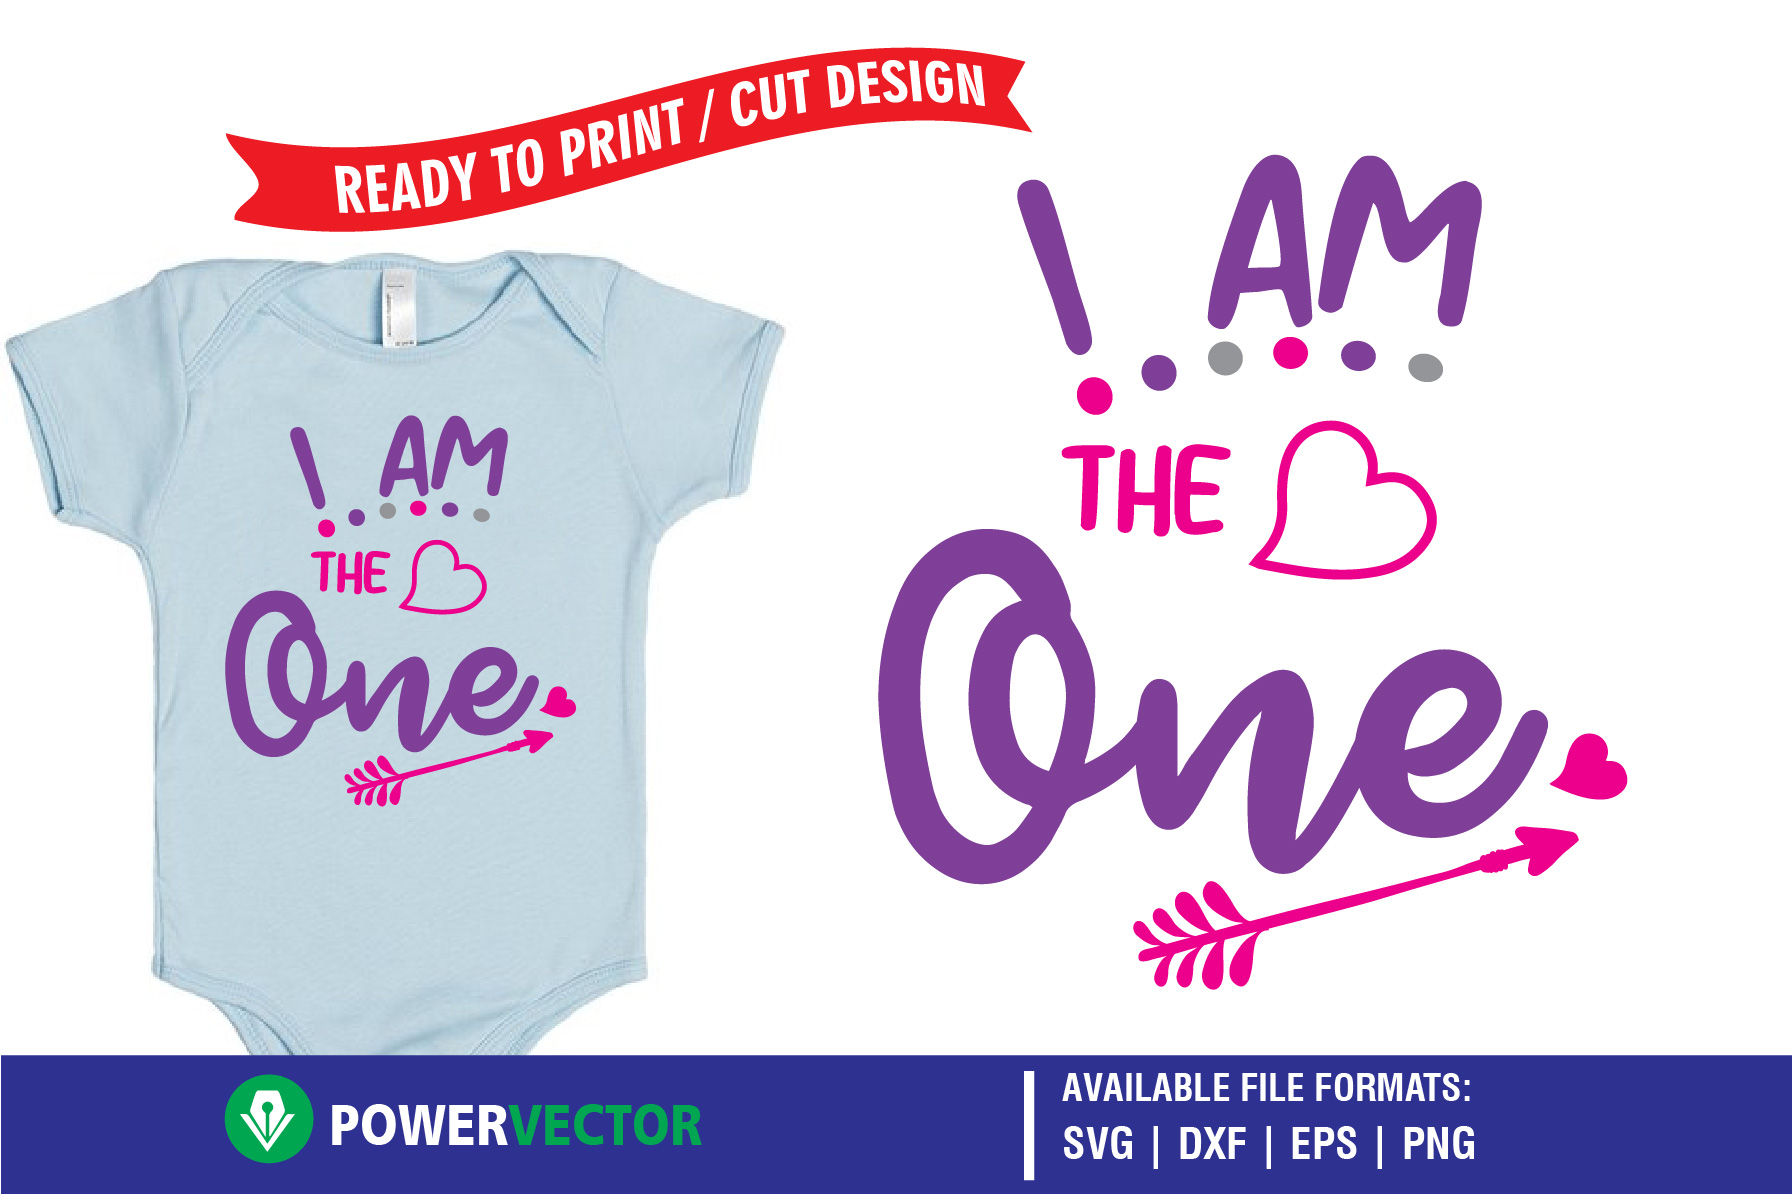 Kids Birthday Party T-Shirt Designs -Printing, Cutting Files example image 2